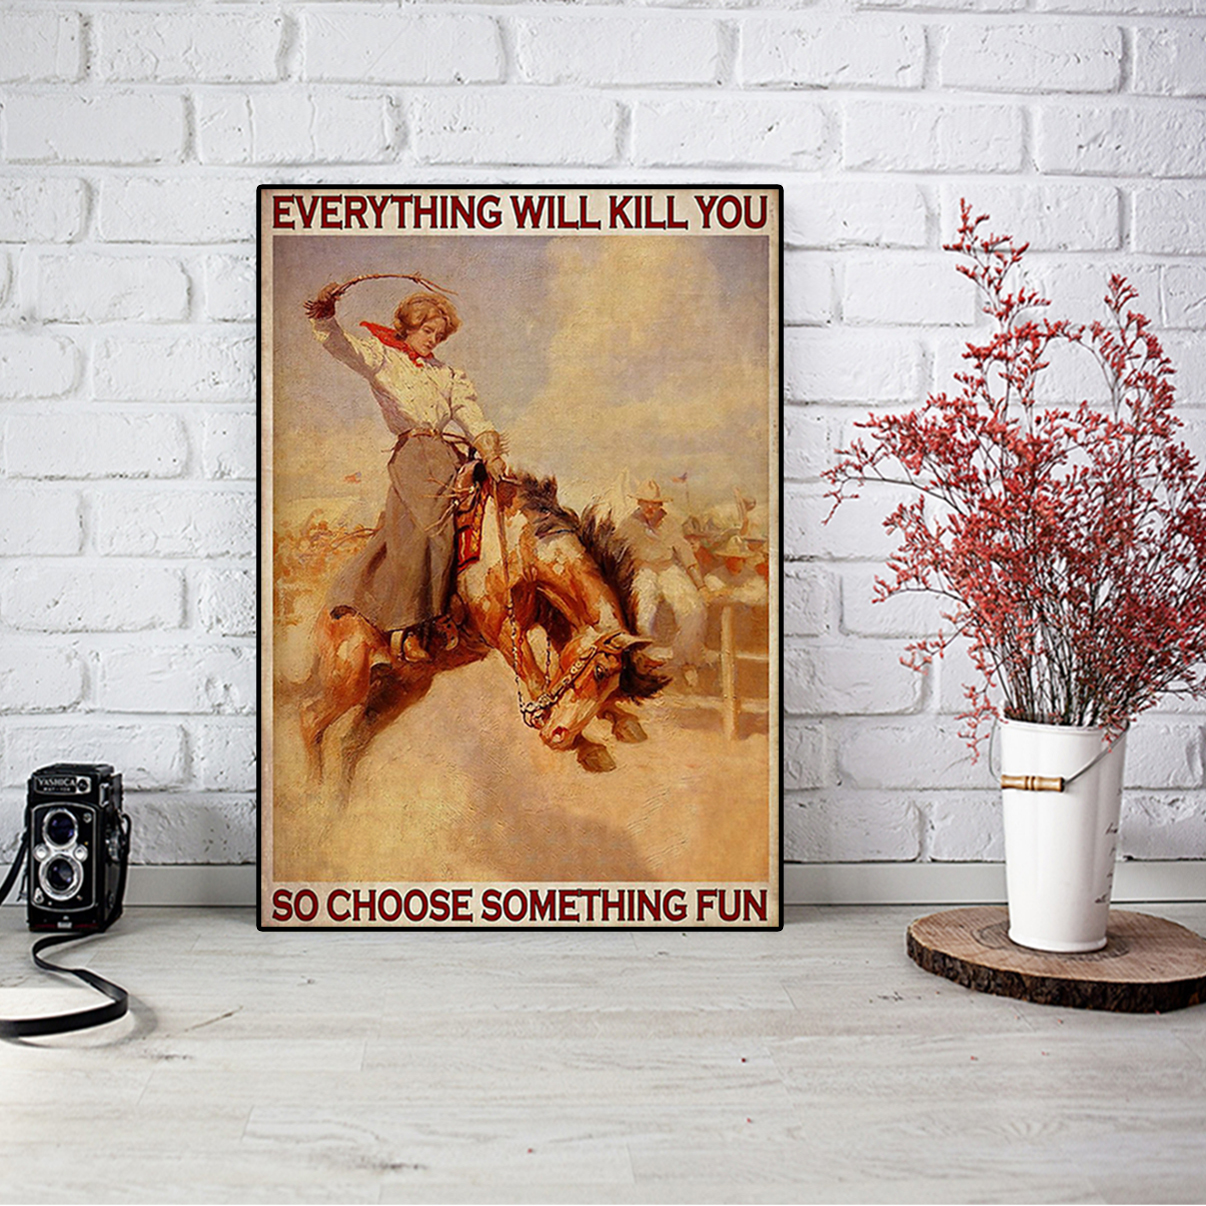 Rodeo girl everything will kill you so choose something fun poster A2